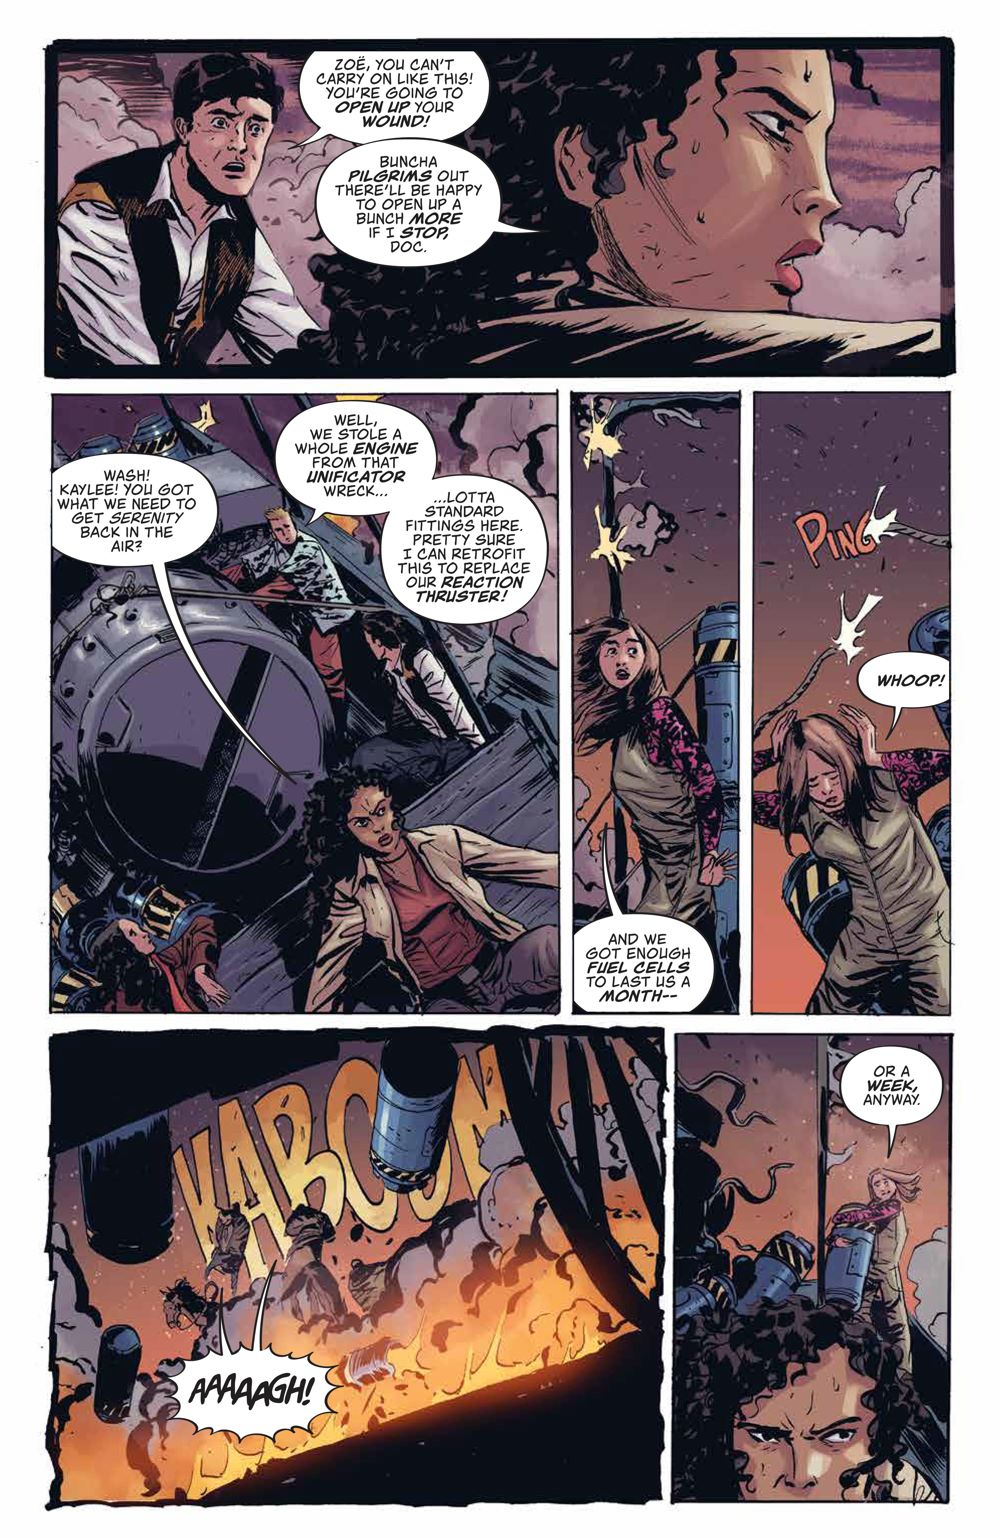 Firefly_UnificationWar_v2_SC_PRESS_10 ComicList Previews: FIREFLY THE UNIFICATION WAR VOLUME 2 TP